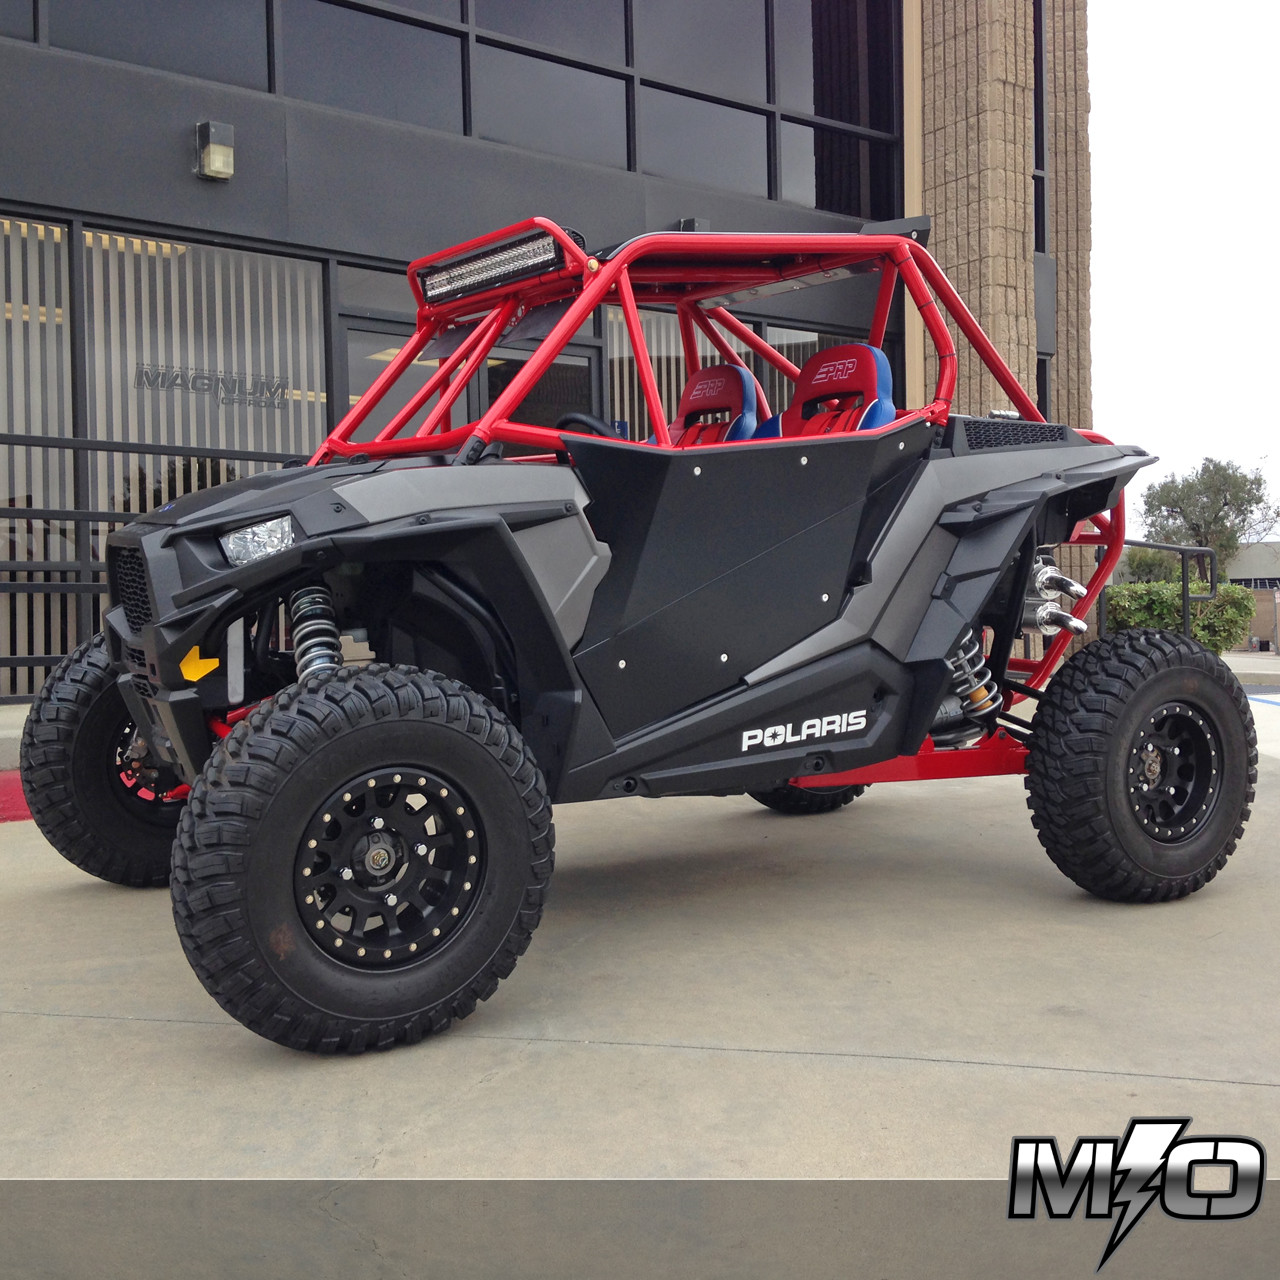 Polaris RZR XP 1000: MX1 Roll Cage System